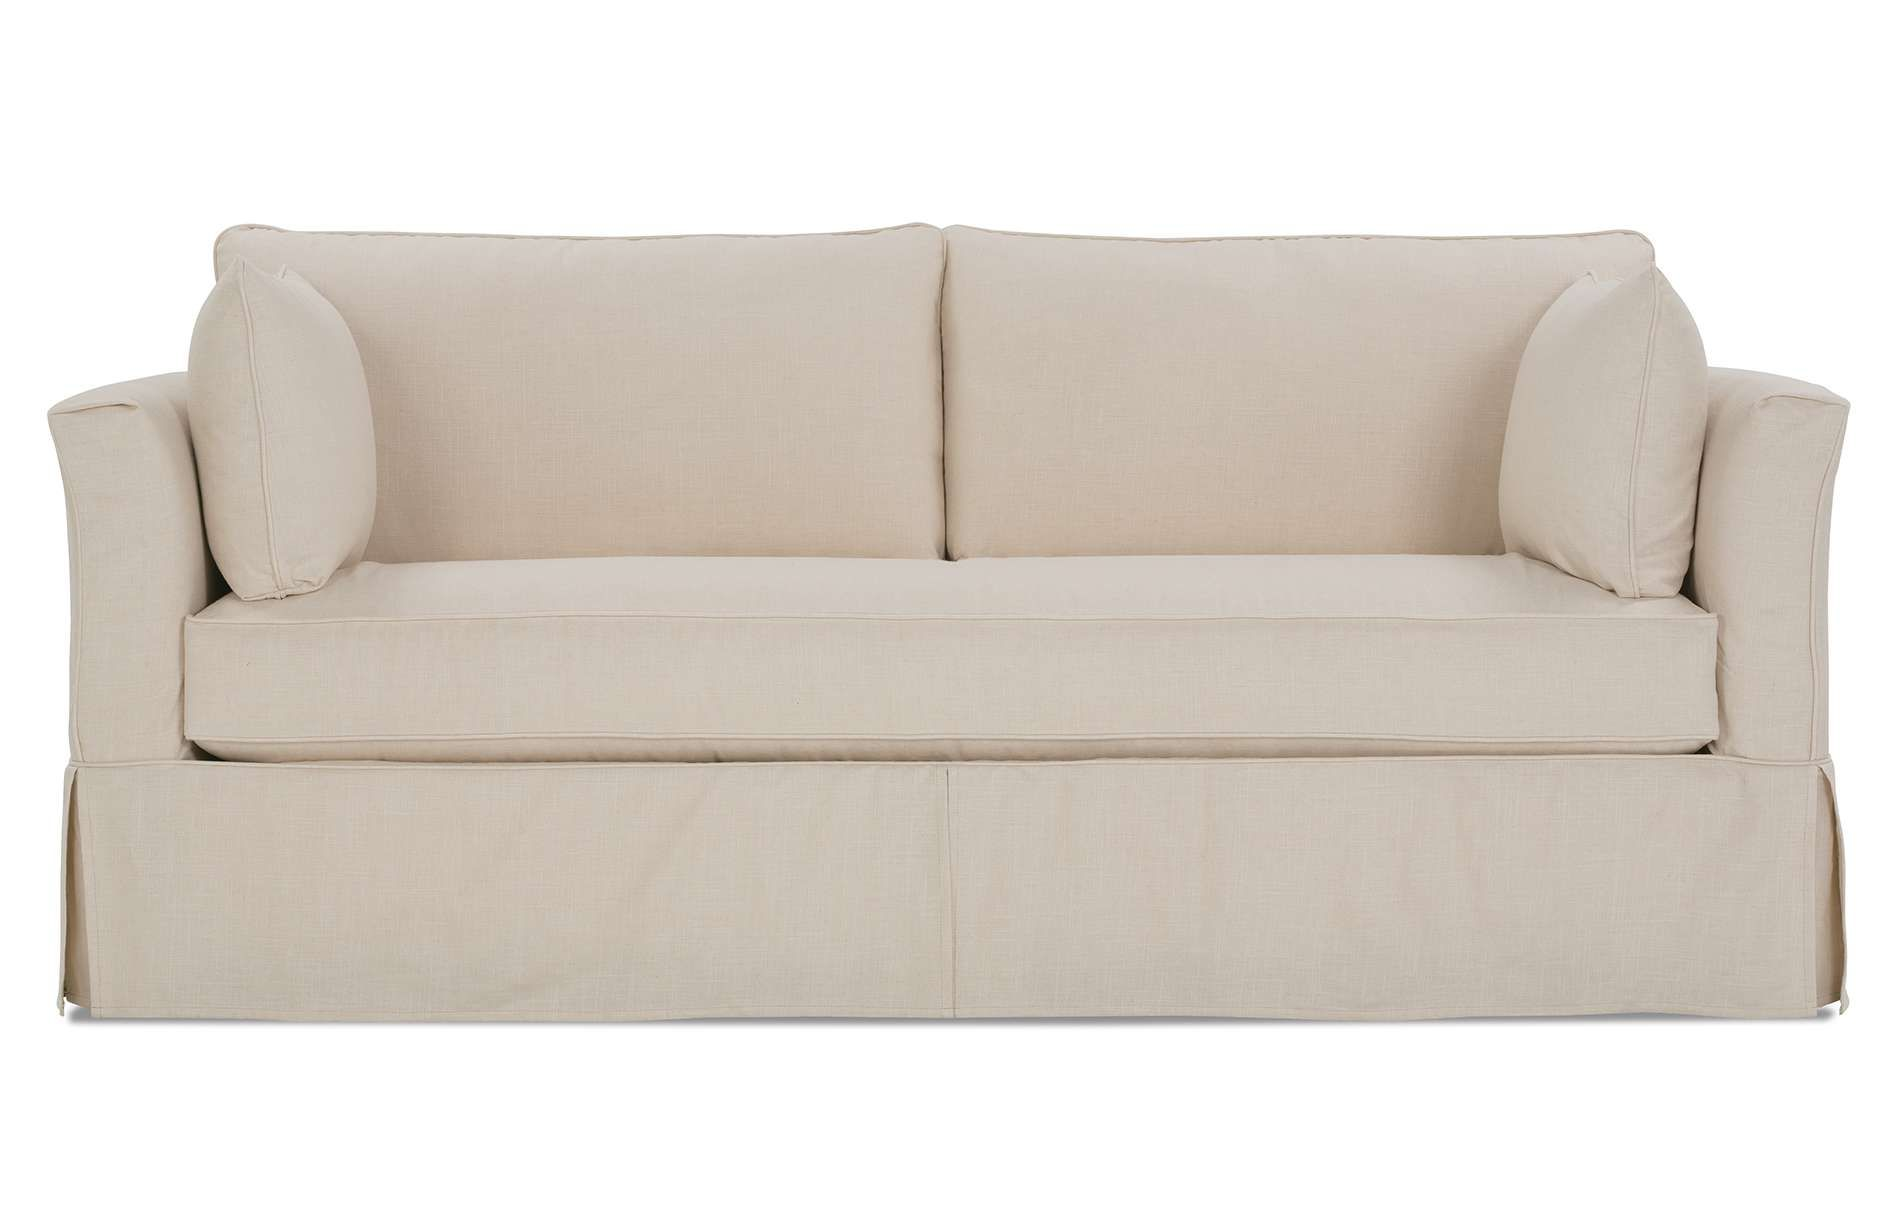 Darby Bench Seat Rowe Furniture For The Home Sofa